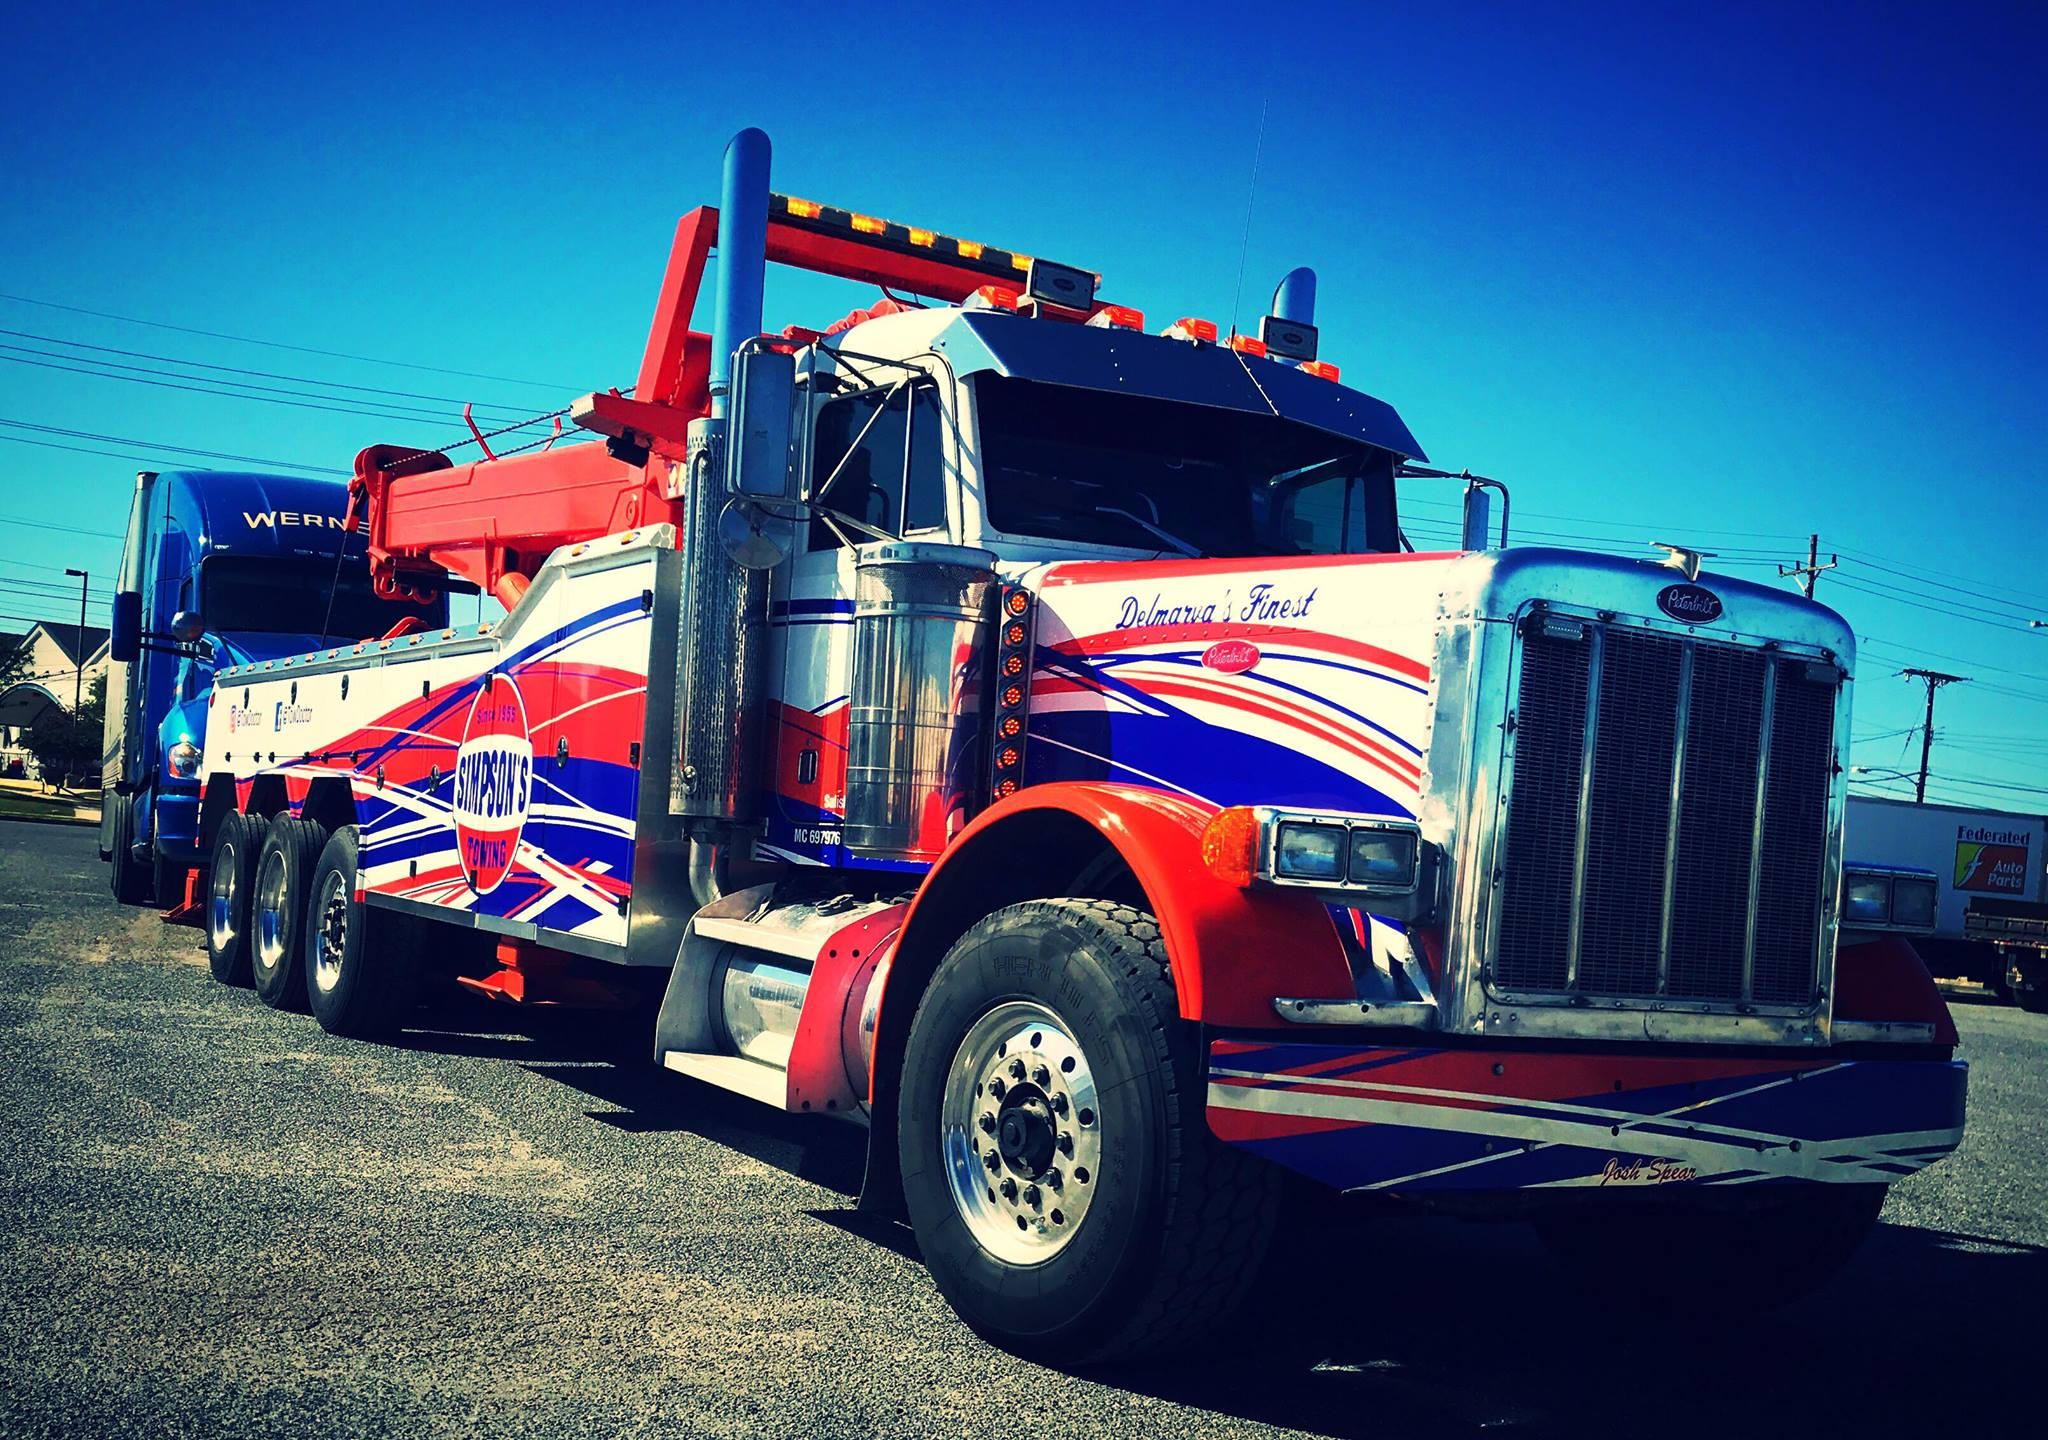 Simpsons Towing Service Eastern Shore of Maryland Towing Services